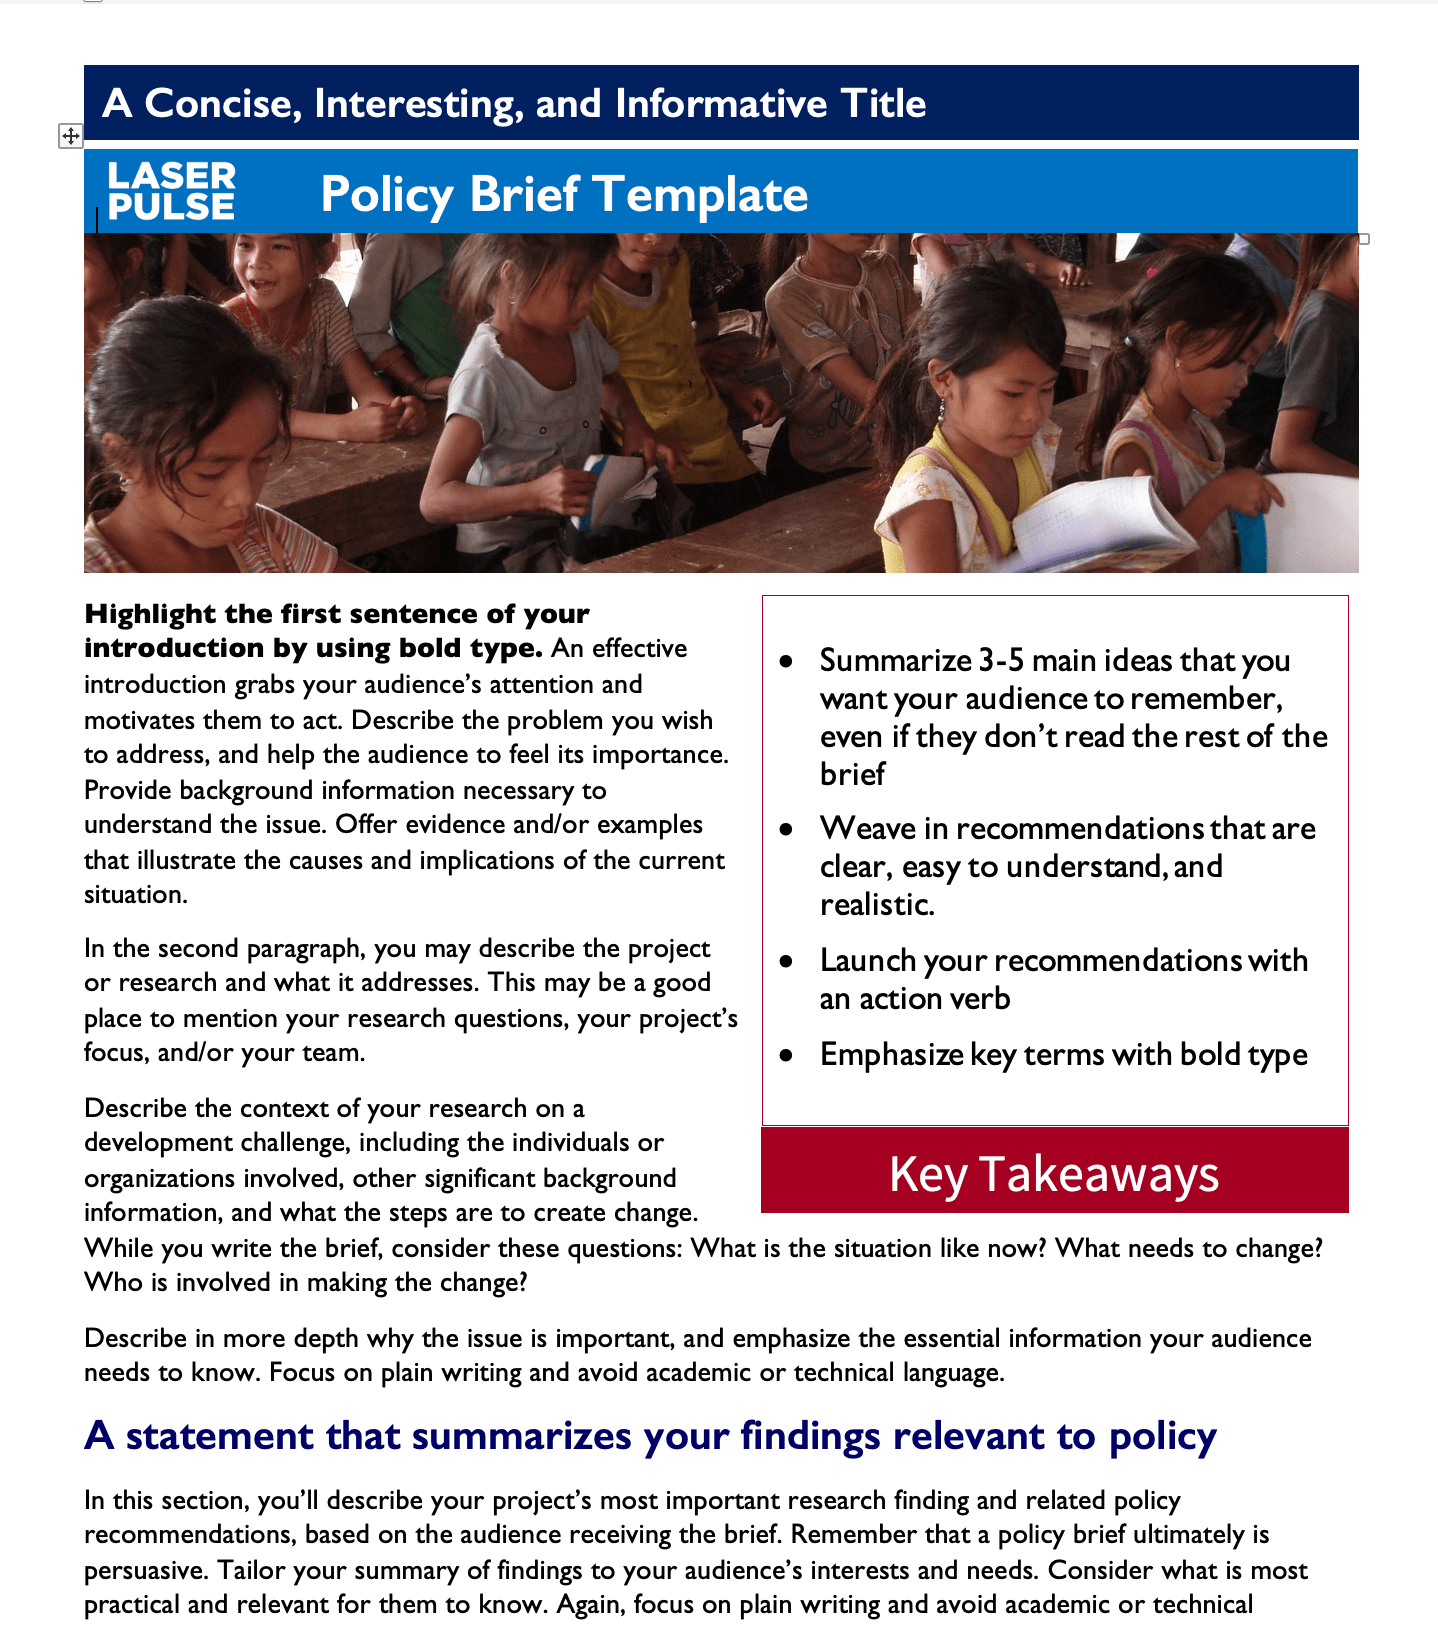 Policy Brief Template